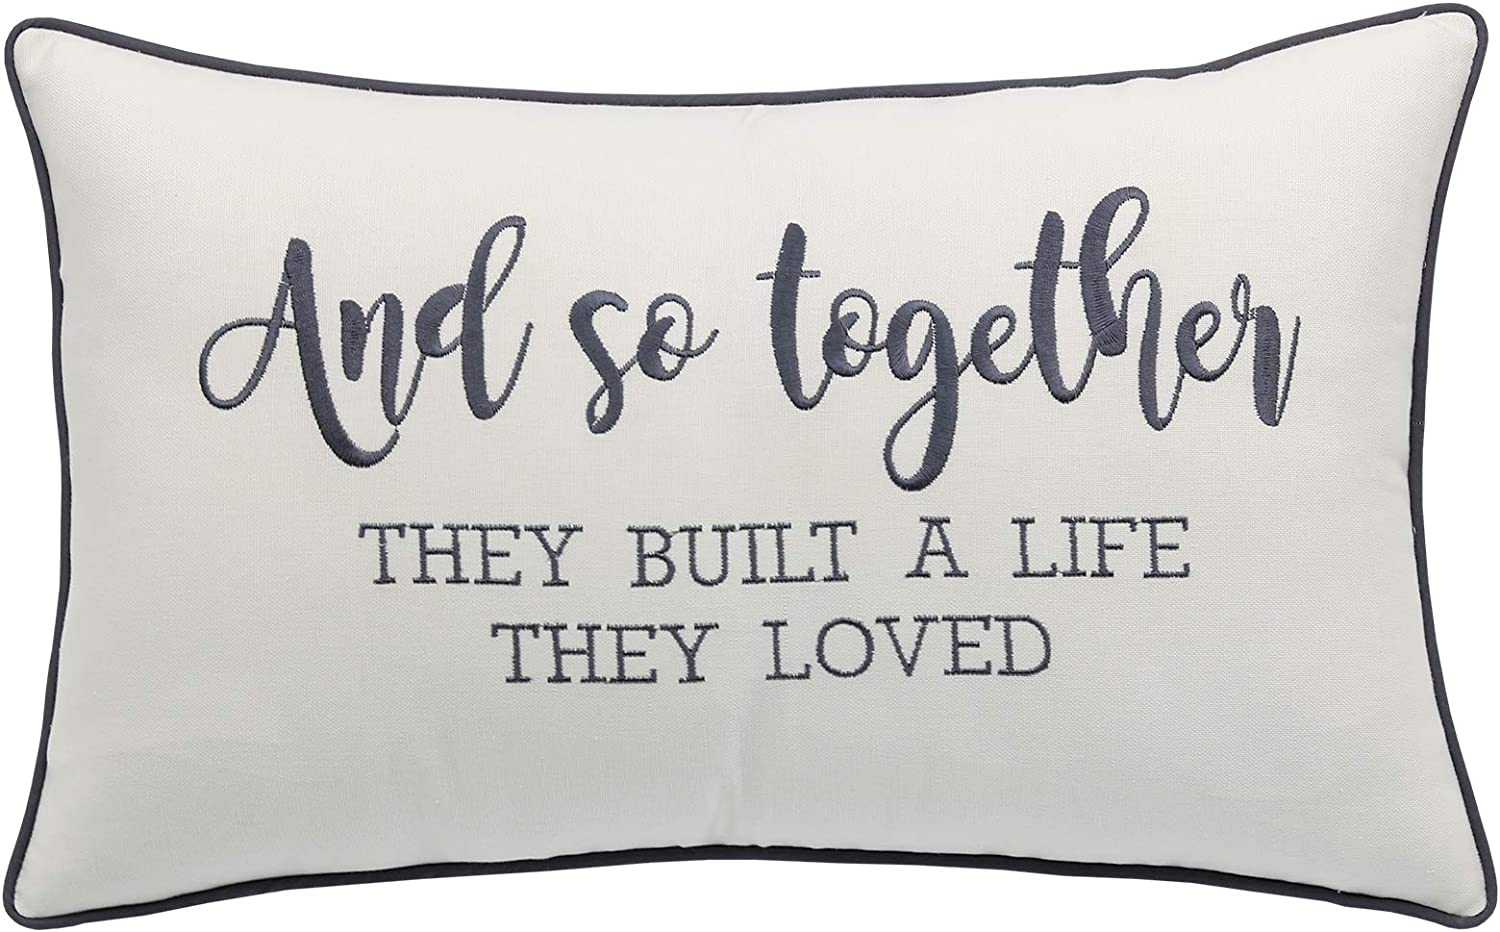 YugTex and So Together They Built A Life They Loved Cotton Embroidered Lumbar Accent Pillowcase - 12x20 Inches, Ivory-Grey